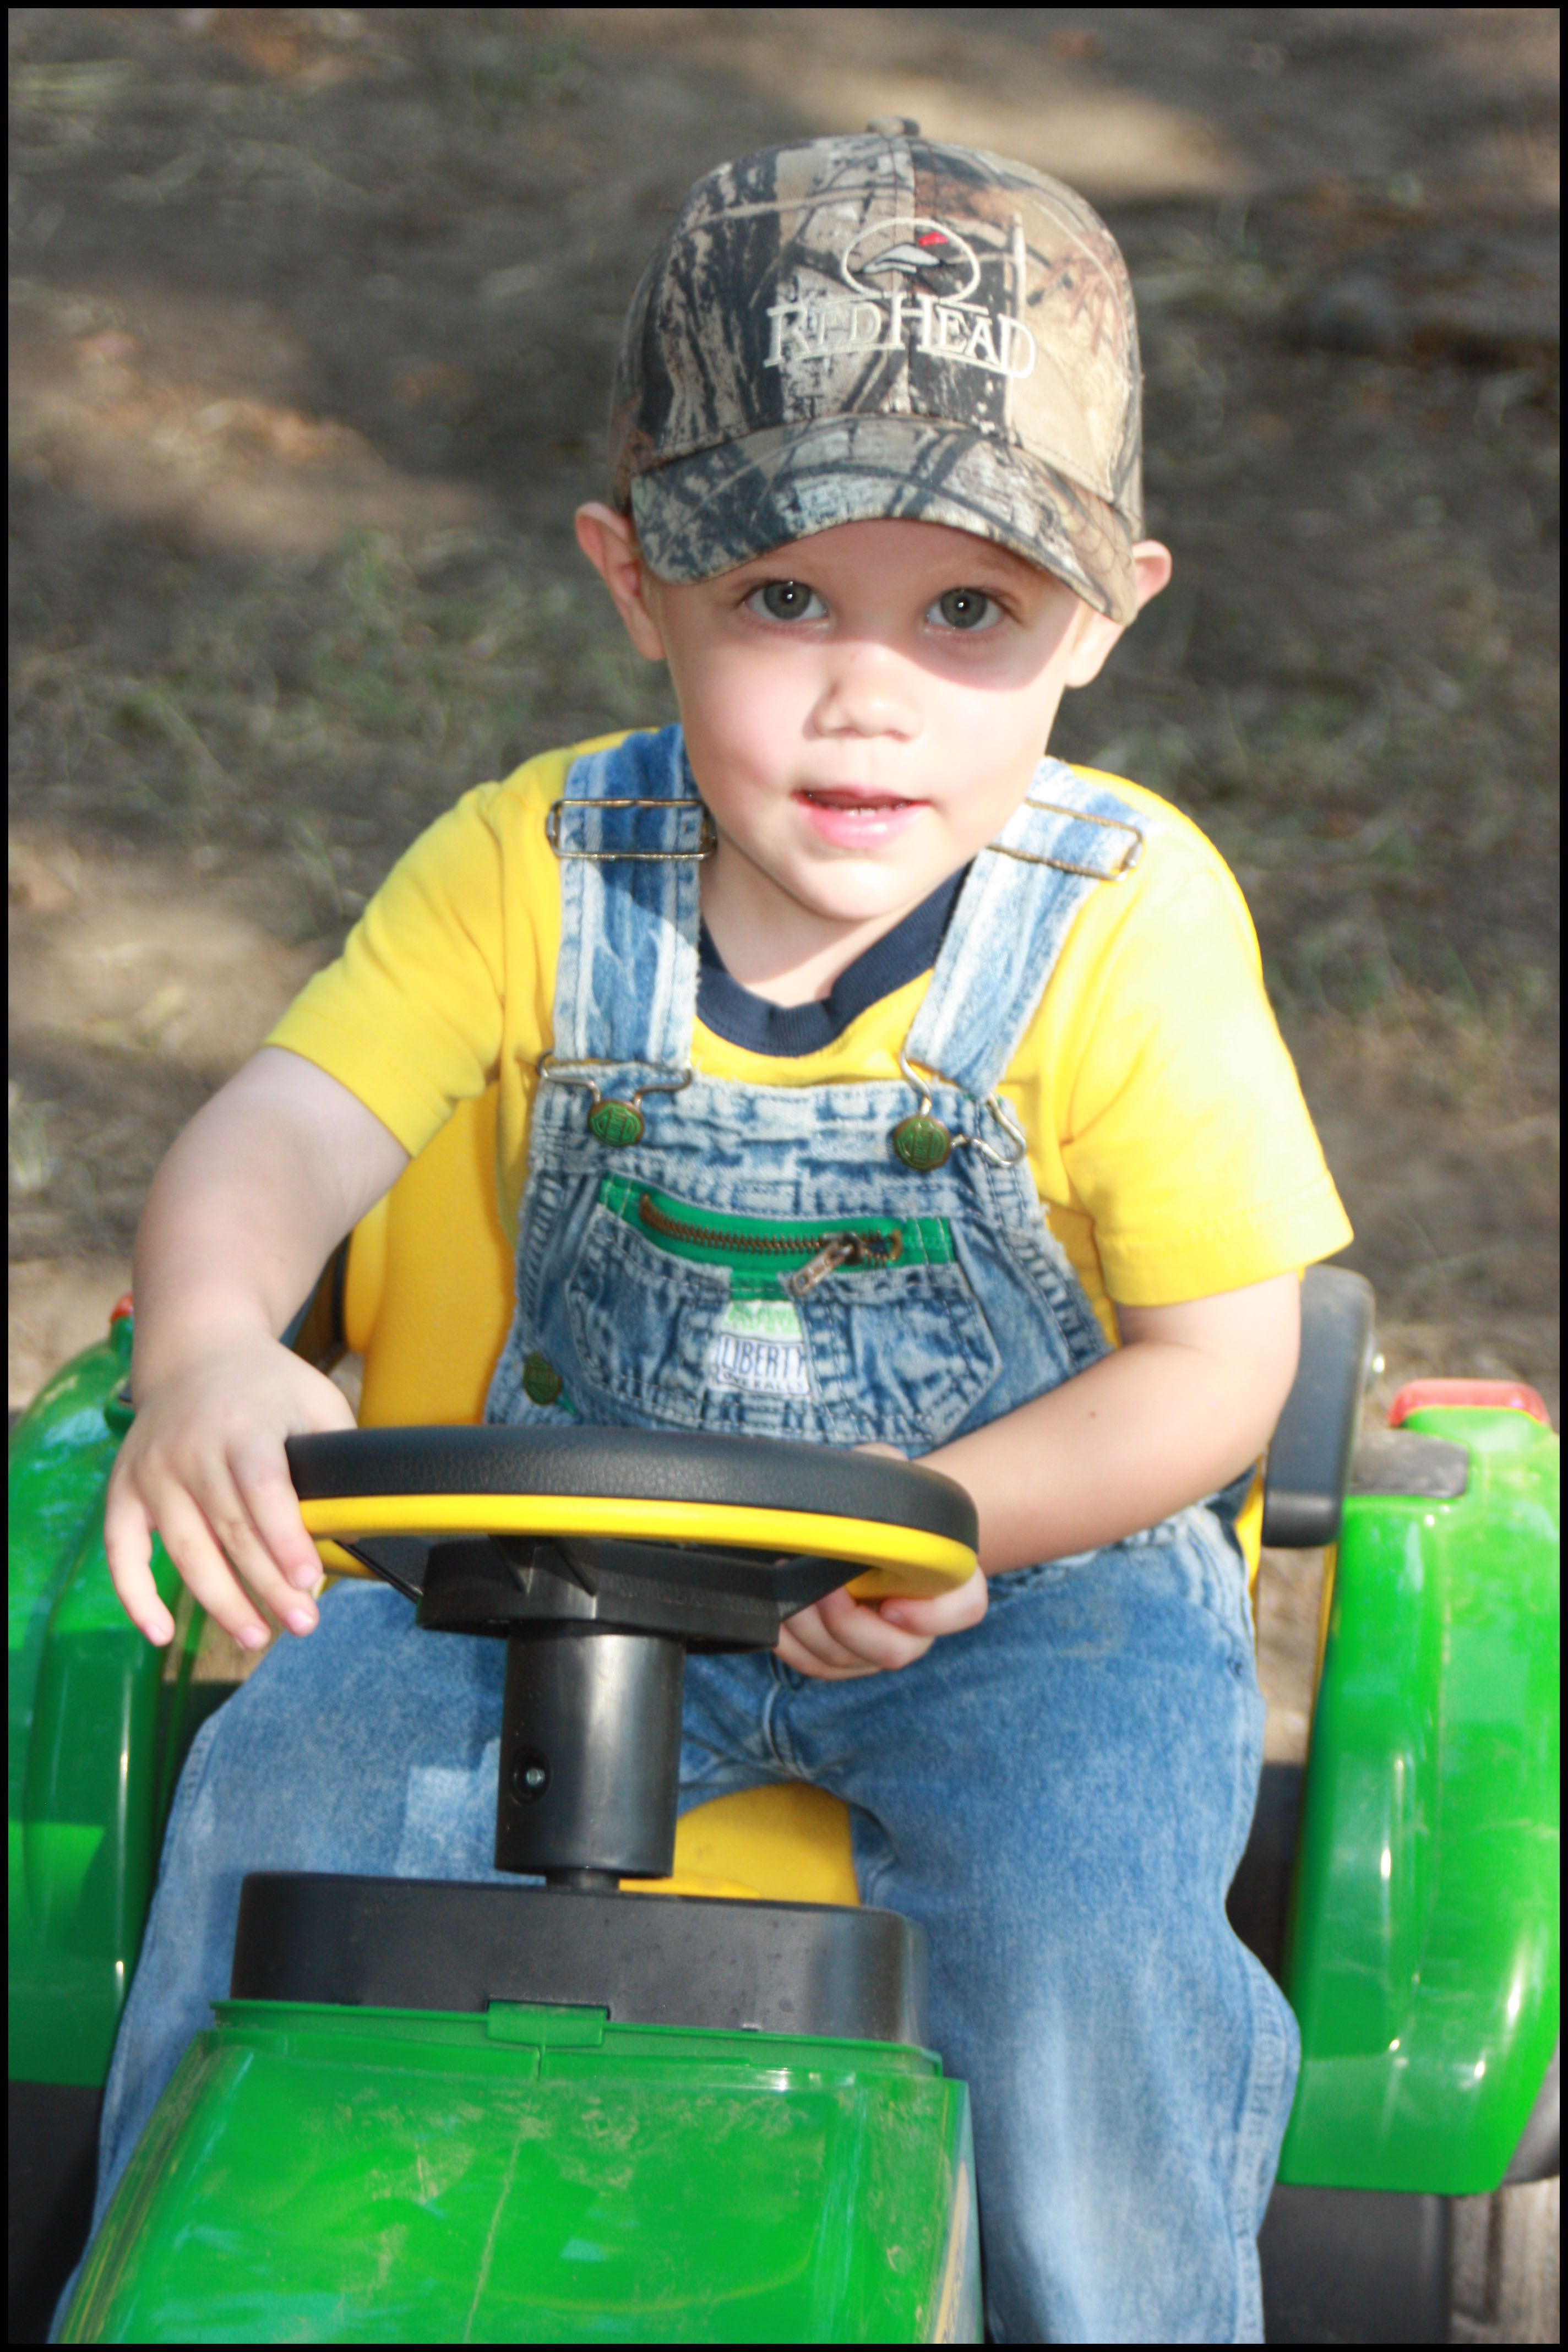 Boy On Tractor : My baby boy on his john deere tractor and camo cap